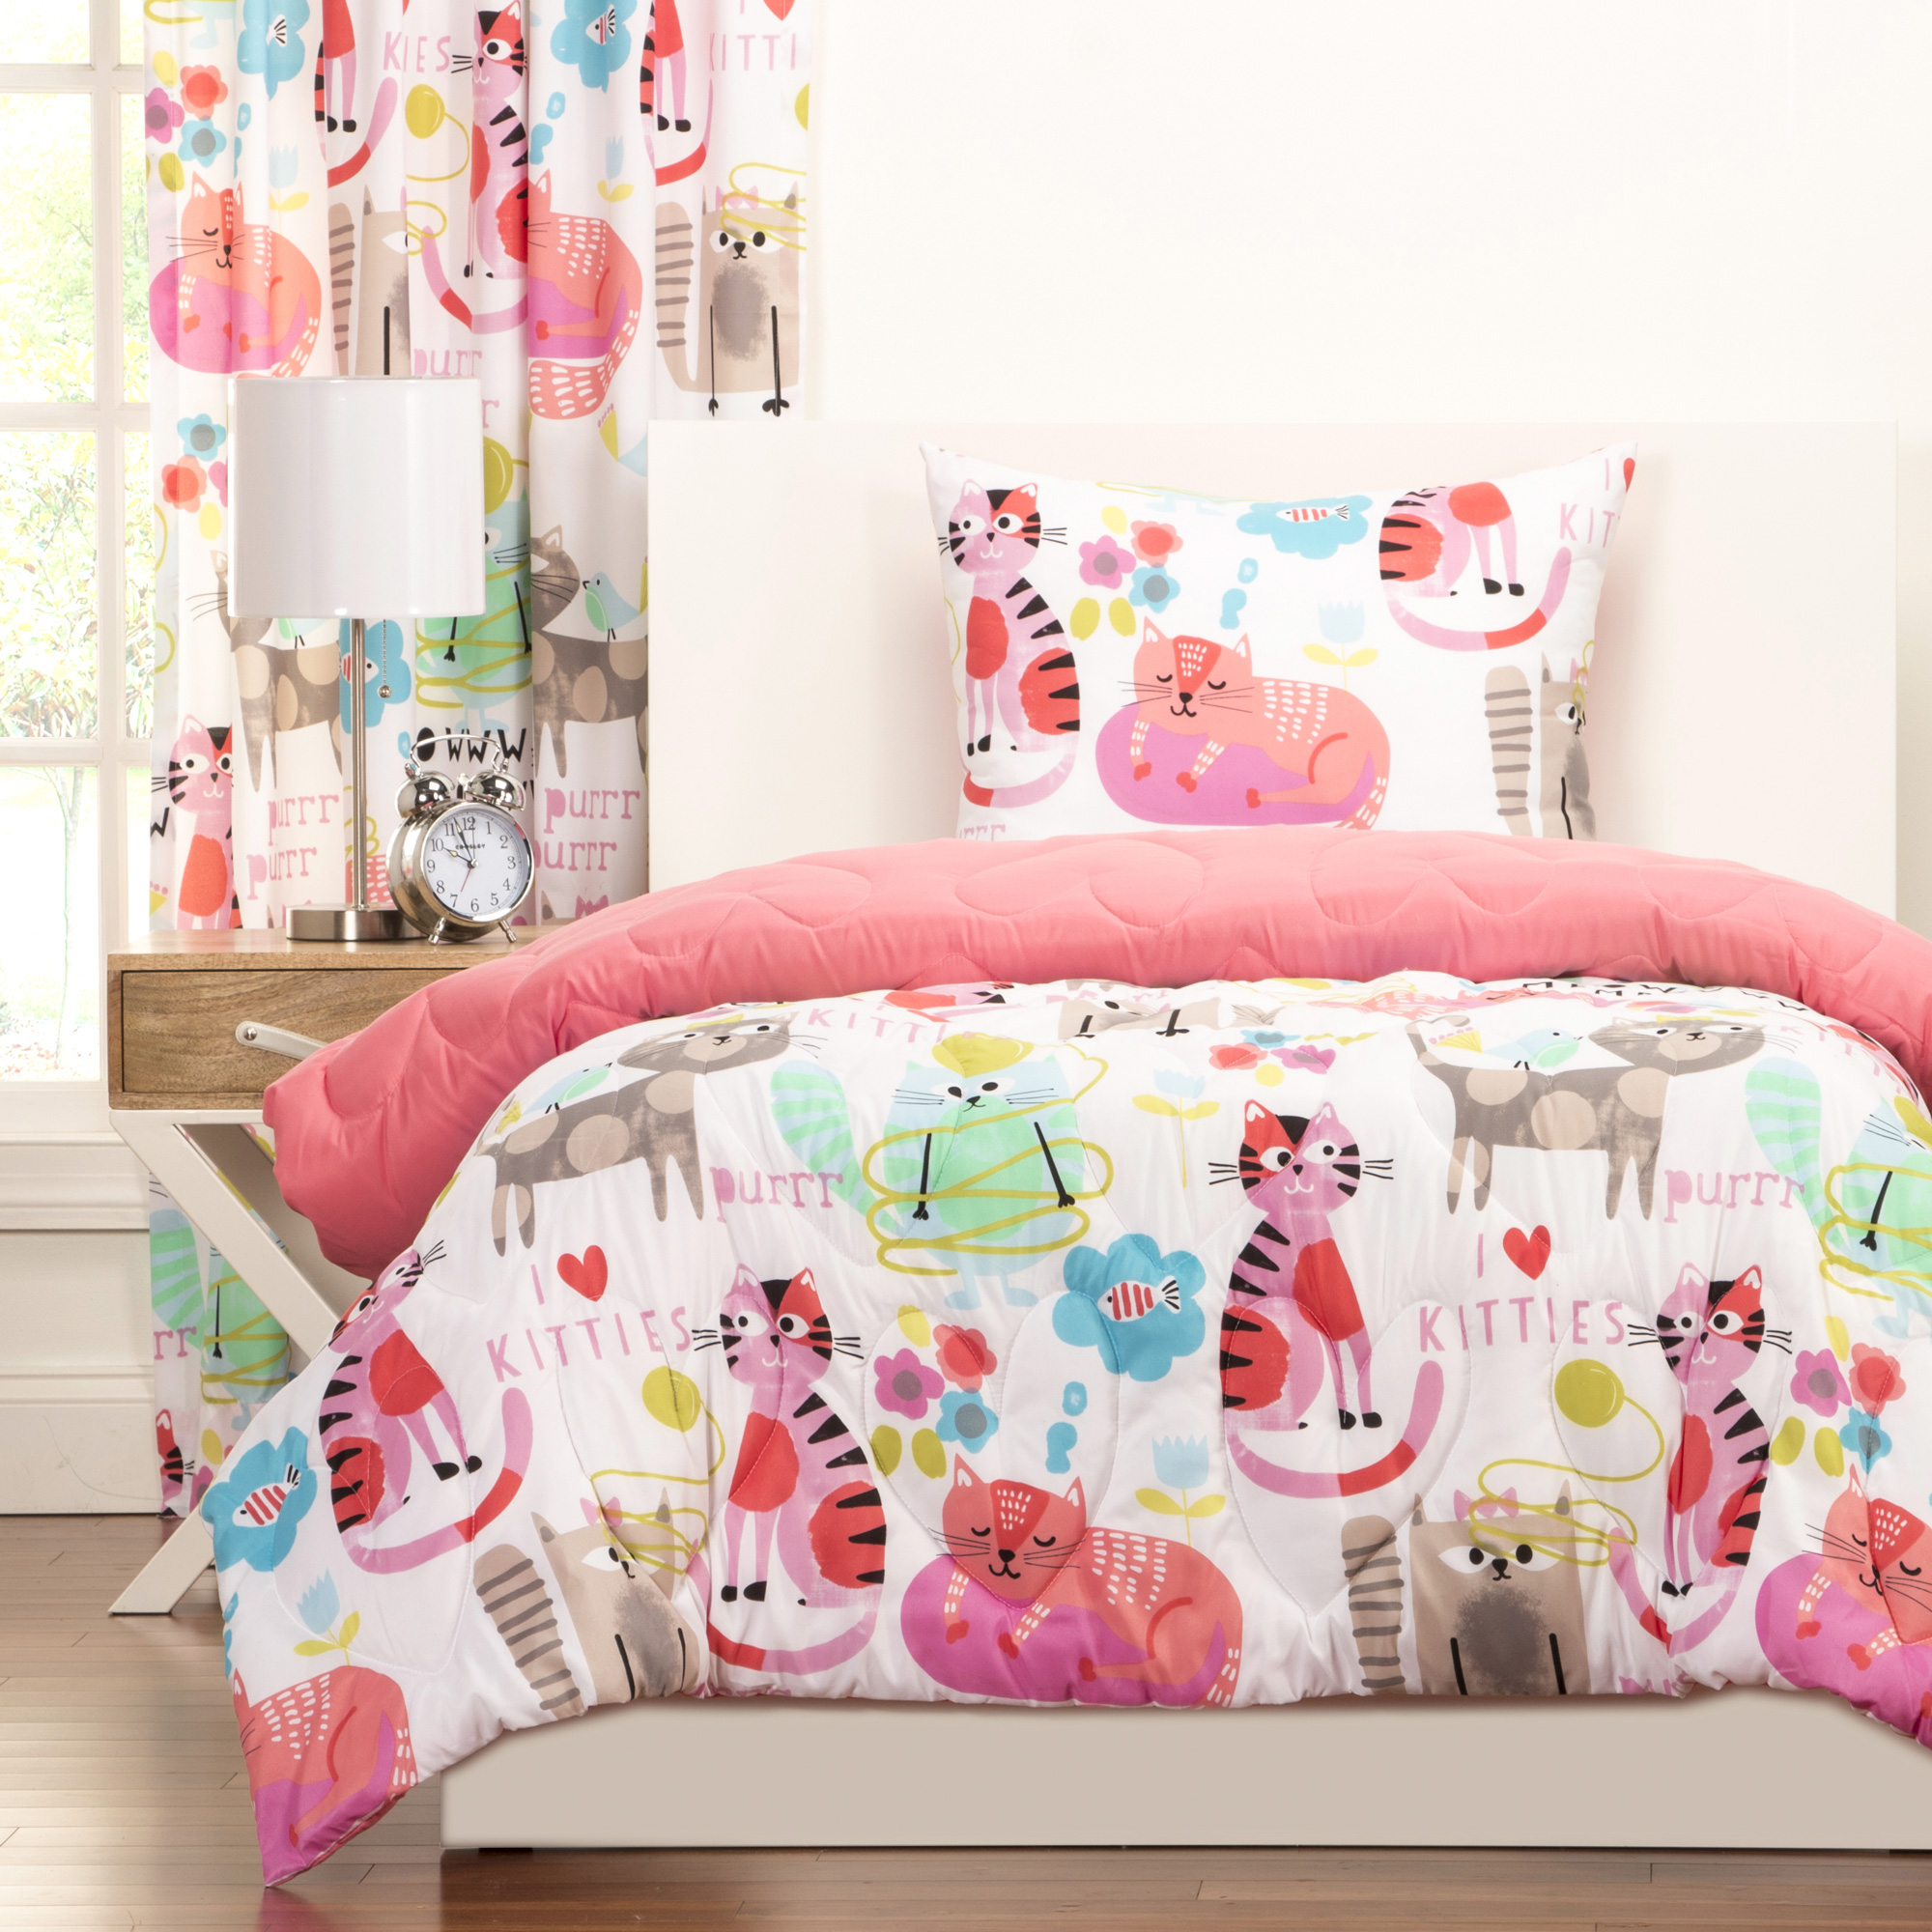 Sis Enterprises | Crayola Purrty Cat 2 Piece Twin Comforter Set